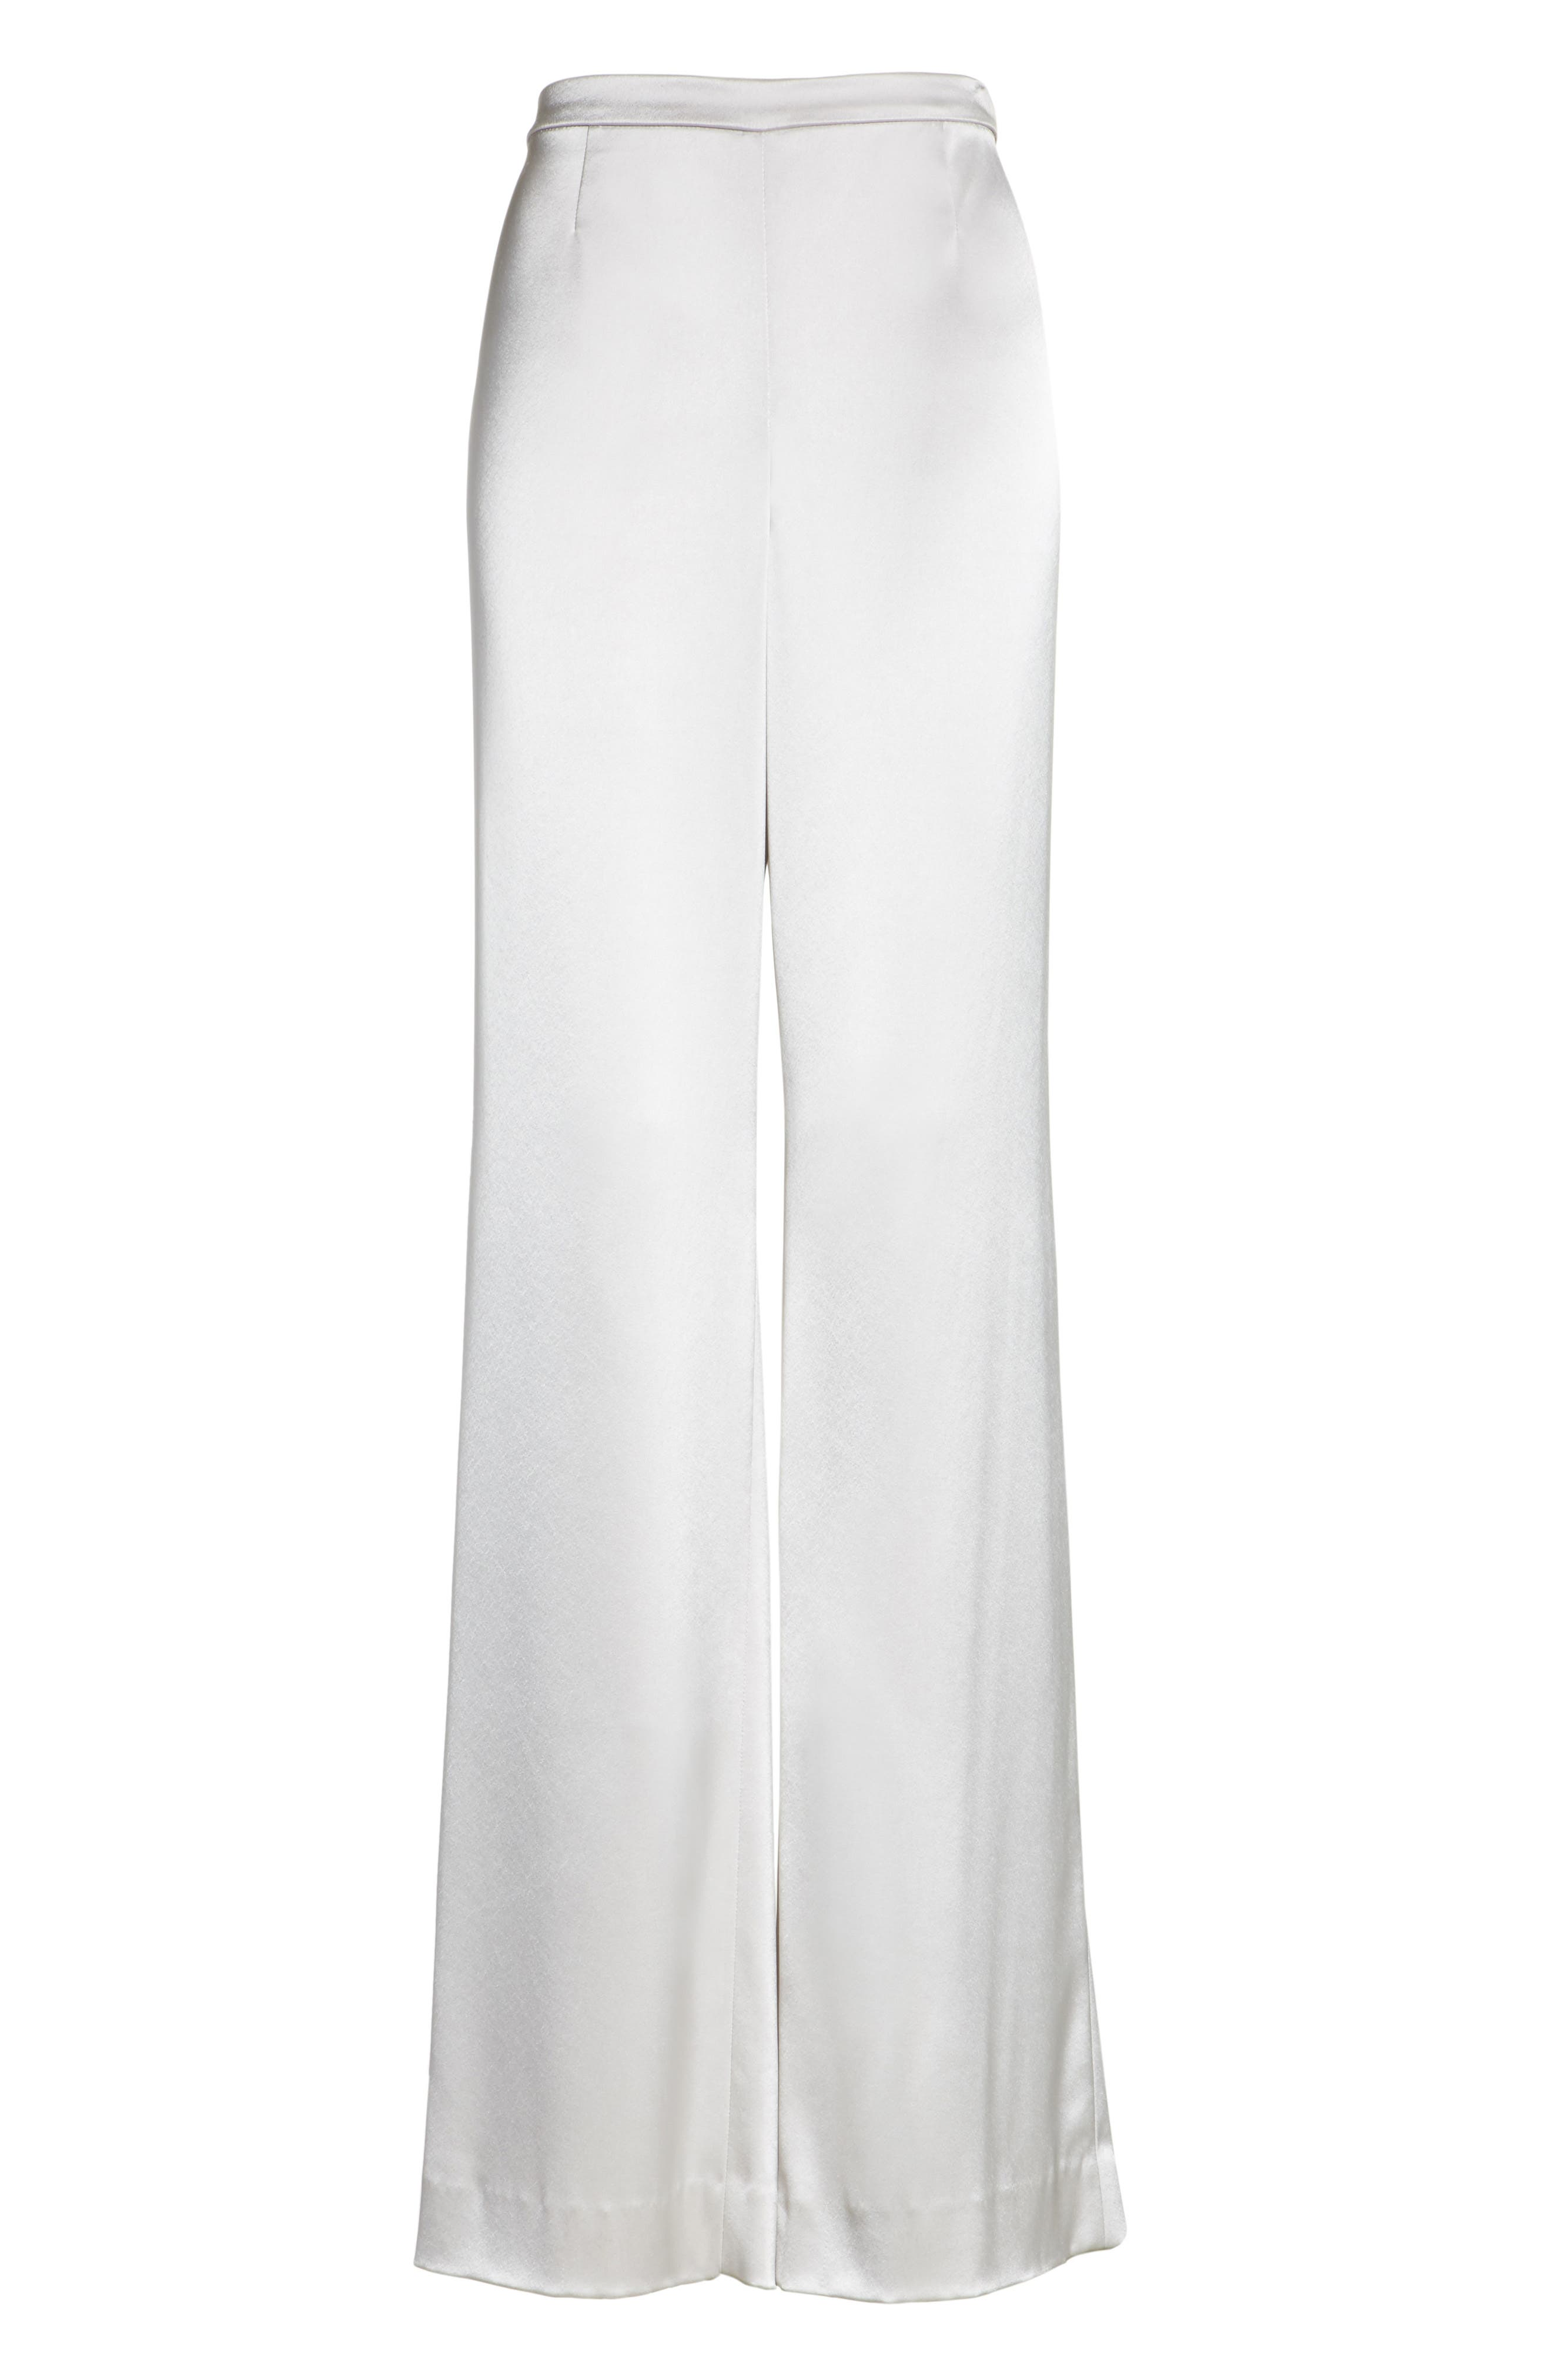 Liquid Satin Pants,                             Alternate thumbnail 6, color,                             PLATINUM